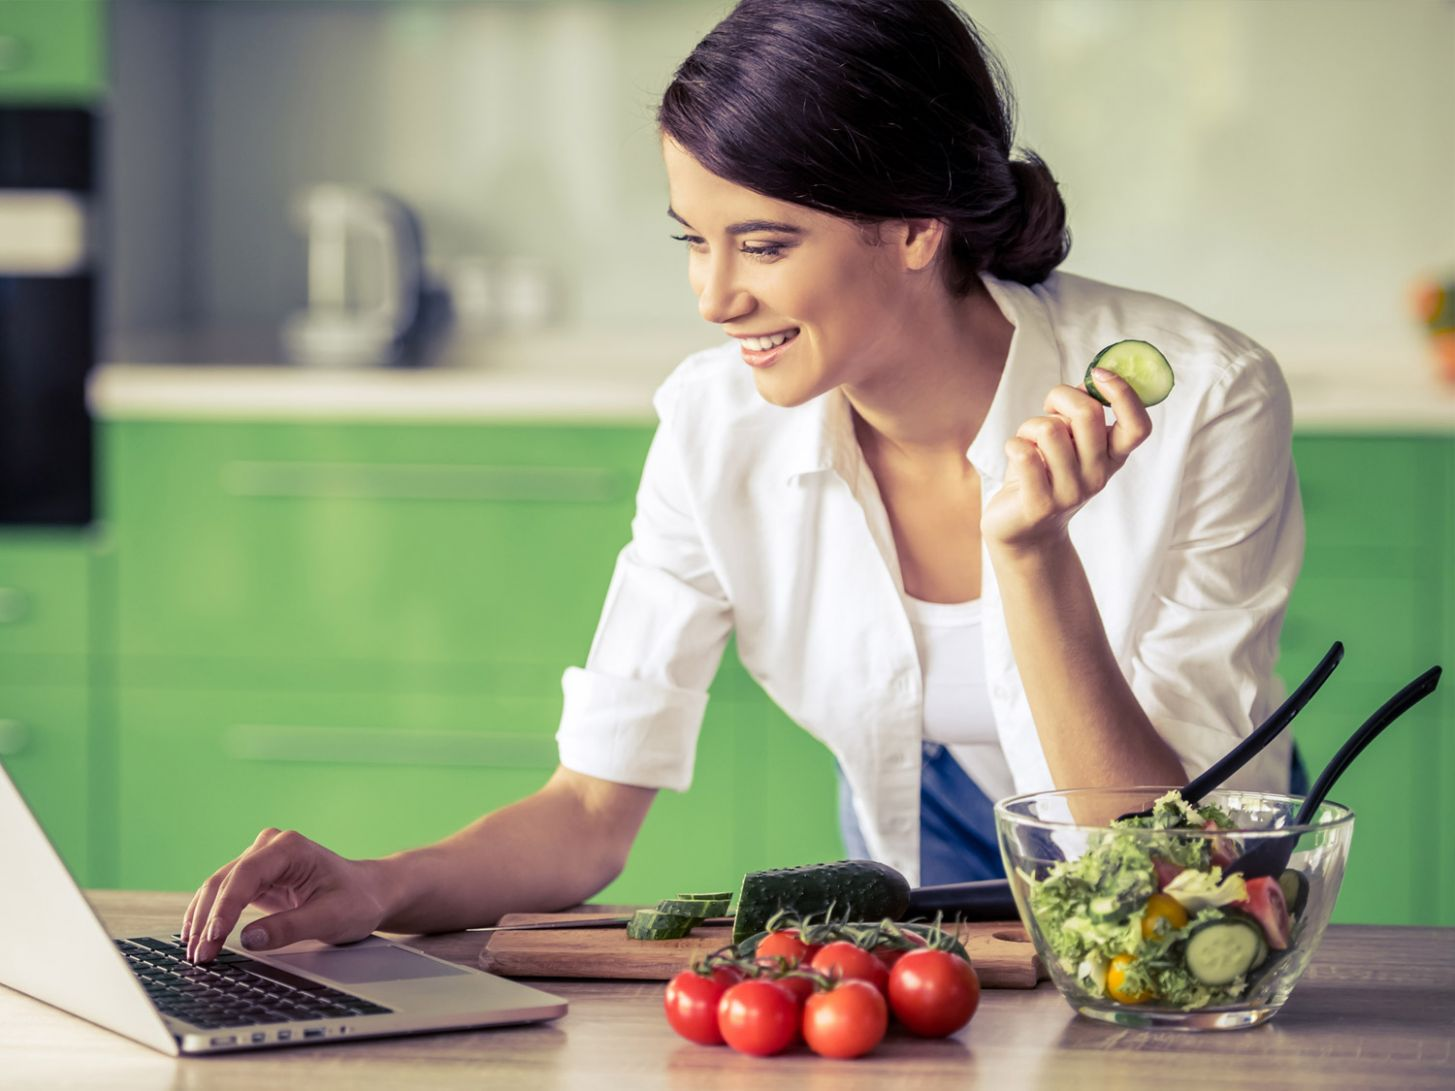 11 Healthy and Easy Meals for Young Adults - Cooking Recipes For Young Adults